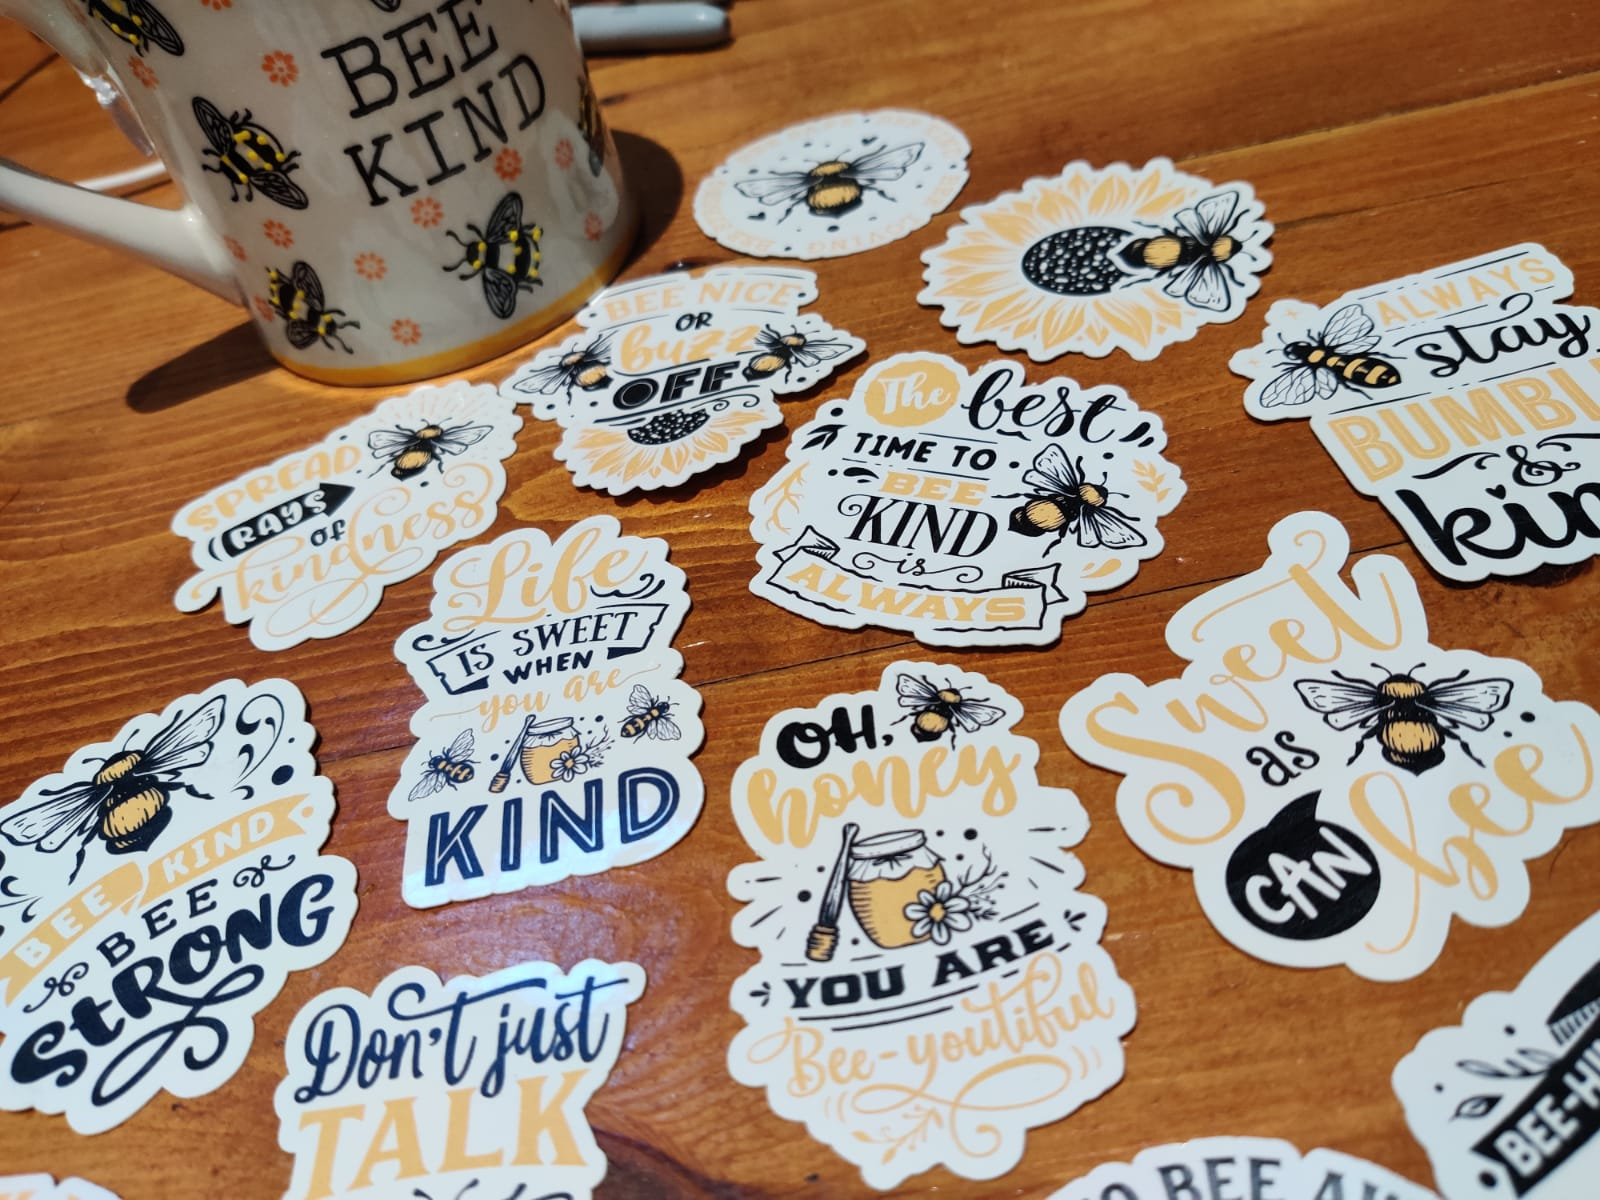 Positivity Bee Themed Stickers | Mental Health Support | Positive Reminder | Encouragement | Bumble Bee Sticker | Anxiety | Charity Donation Kind Shop 3